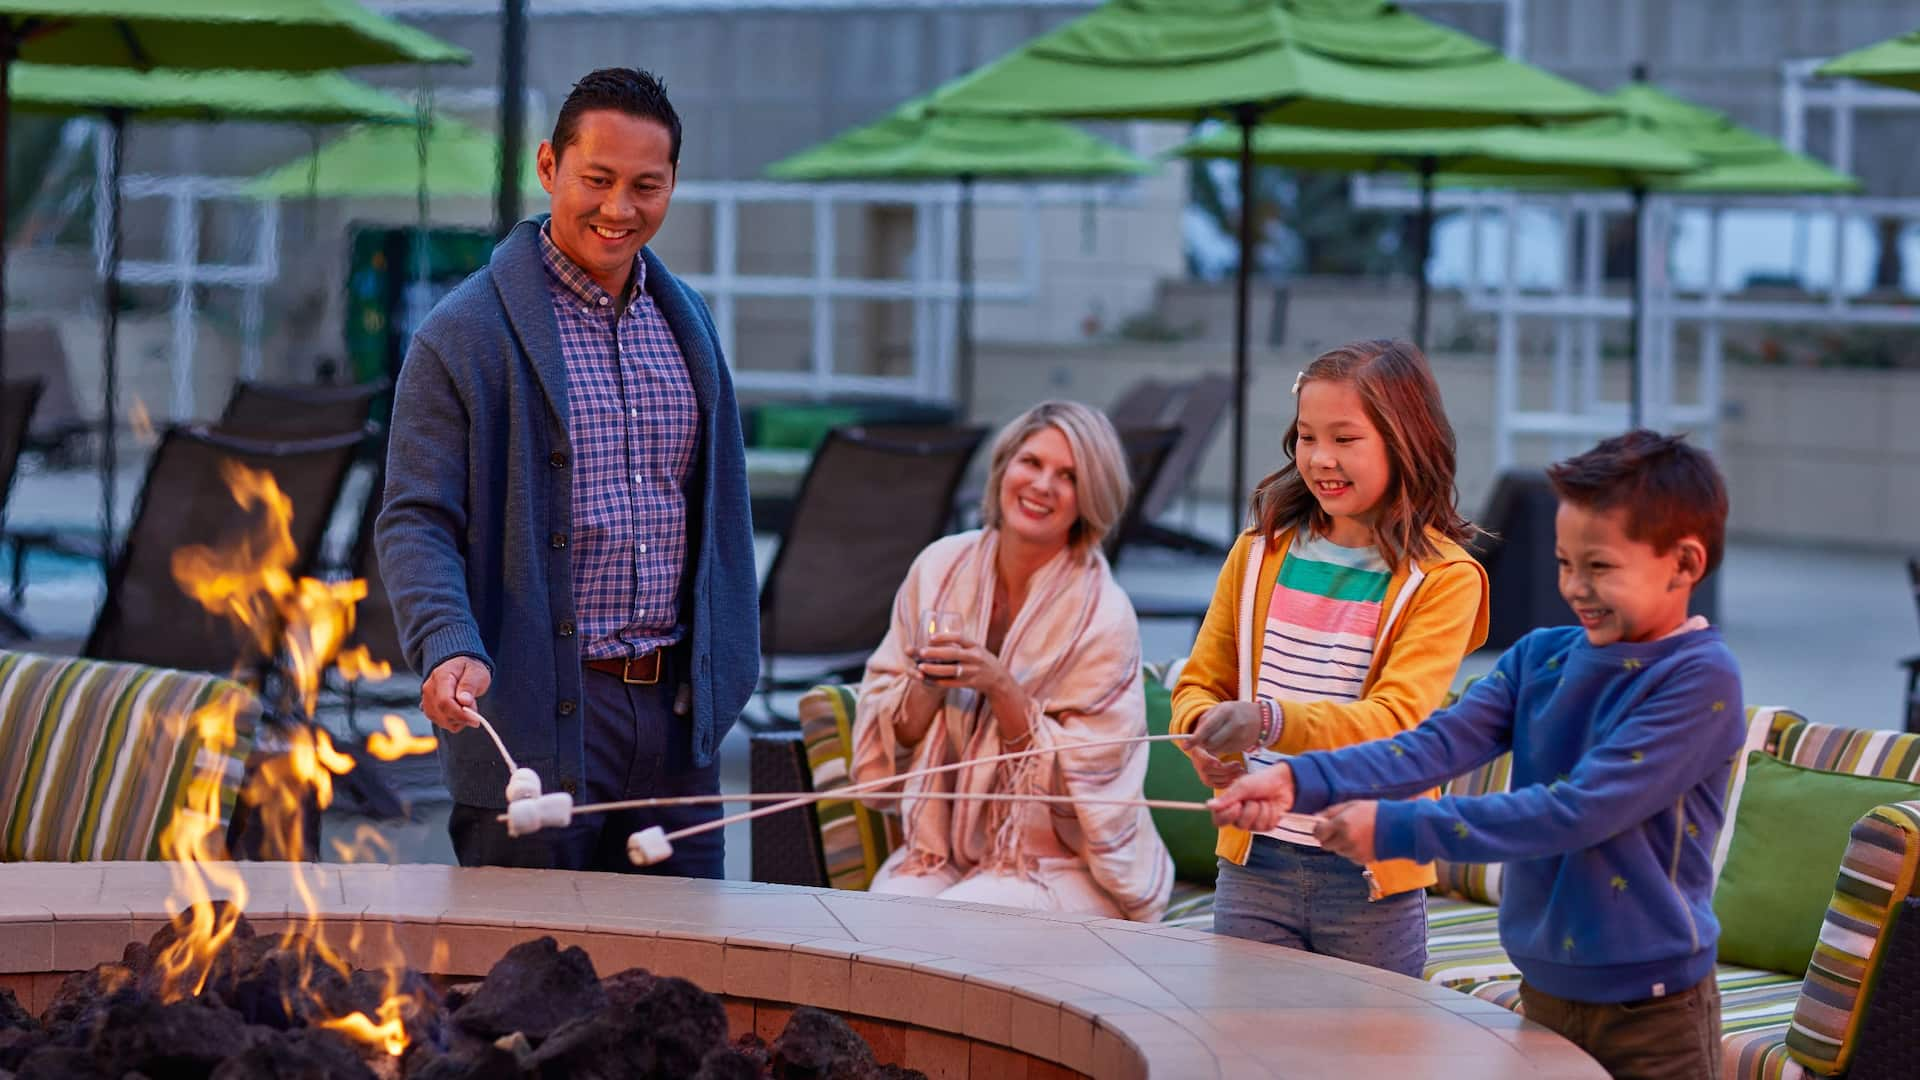 Firepit at Hyatt Regency Orange County